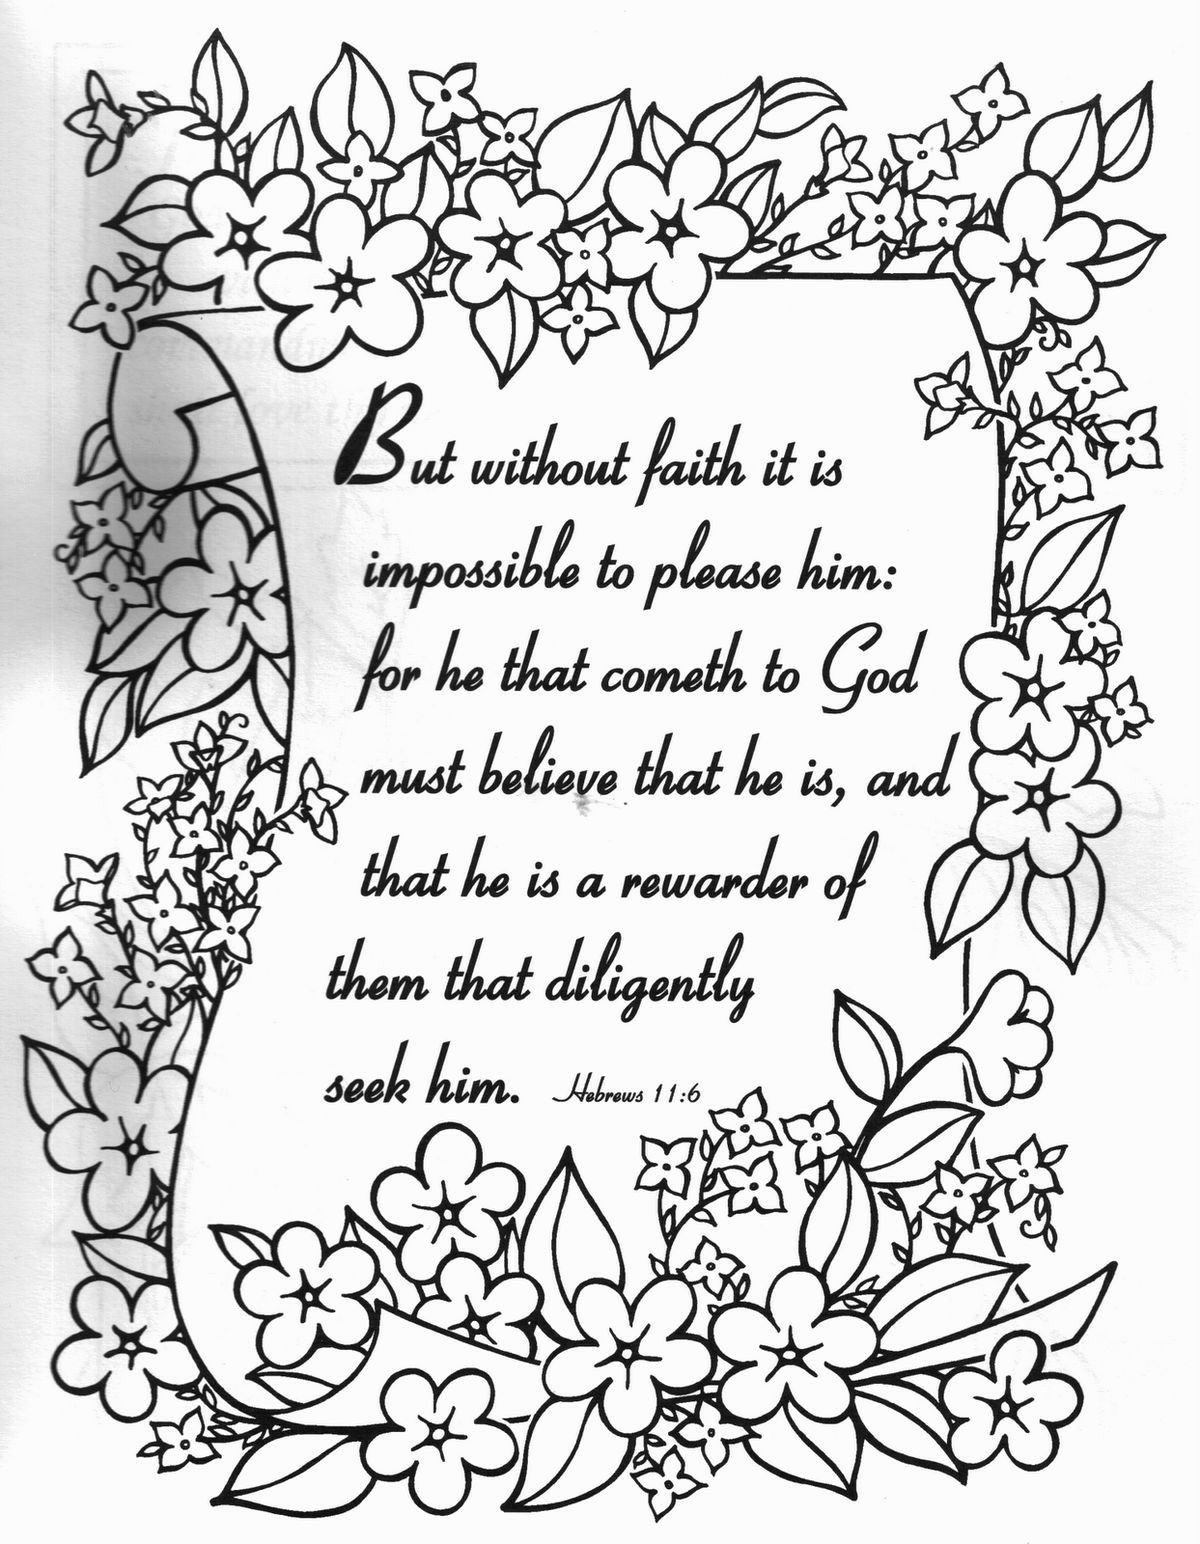 Pin By Mary Wilde On Adult Coloring Bible Verse Coloring Page Bible Verse Coloring Quote Coloring Pages